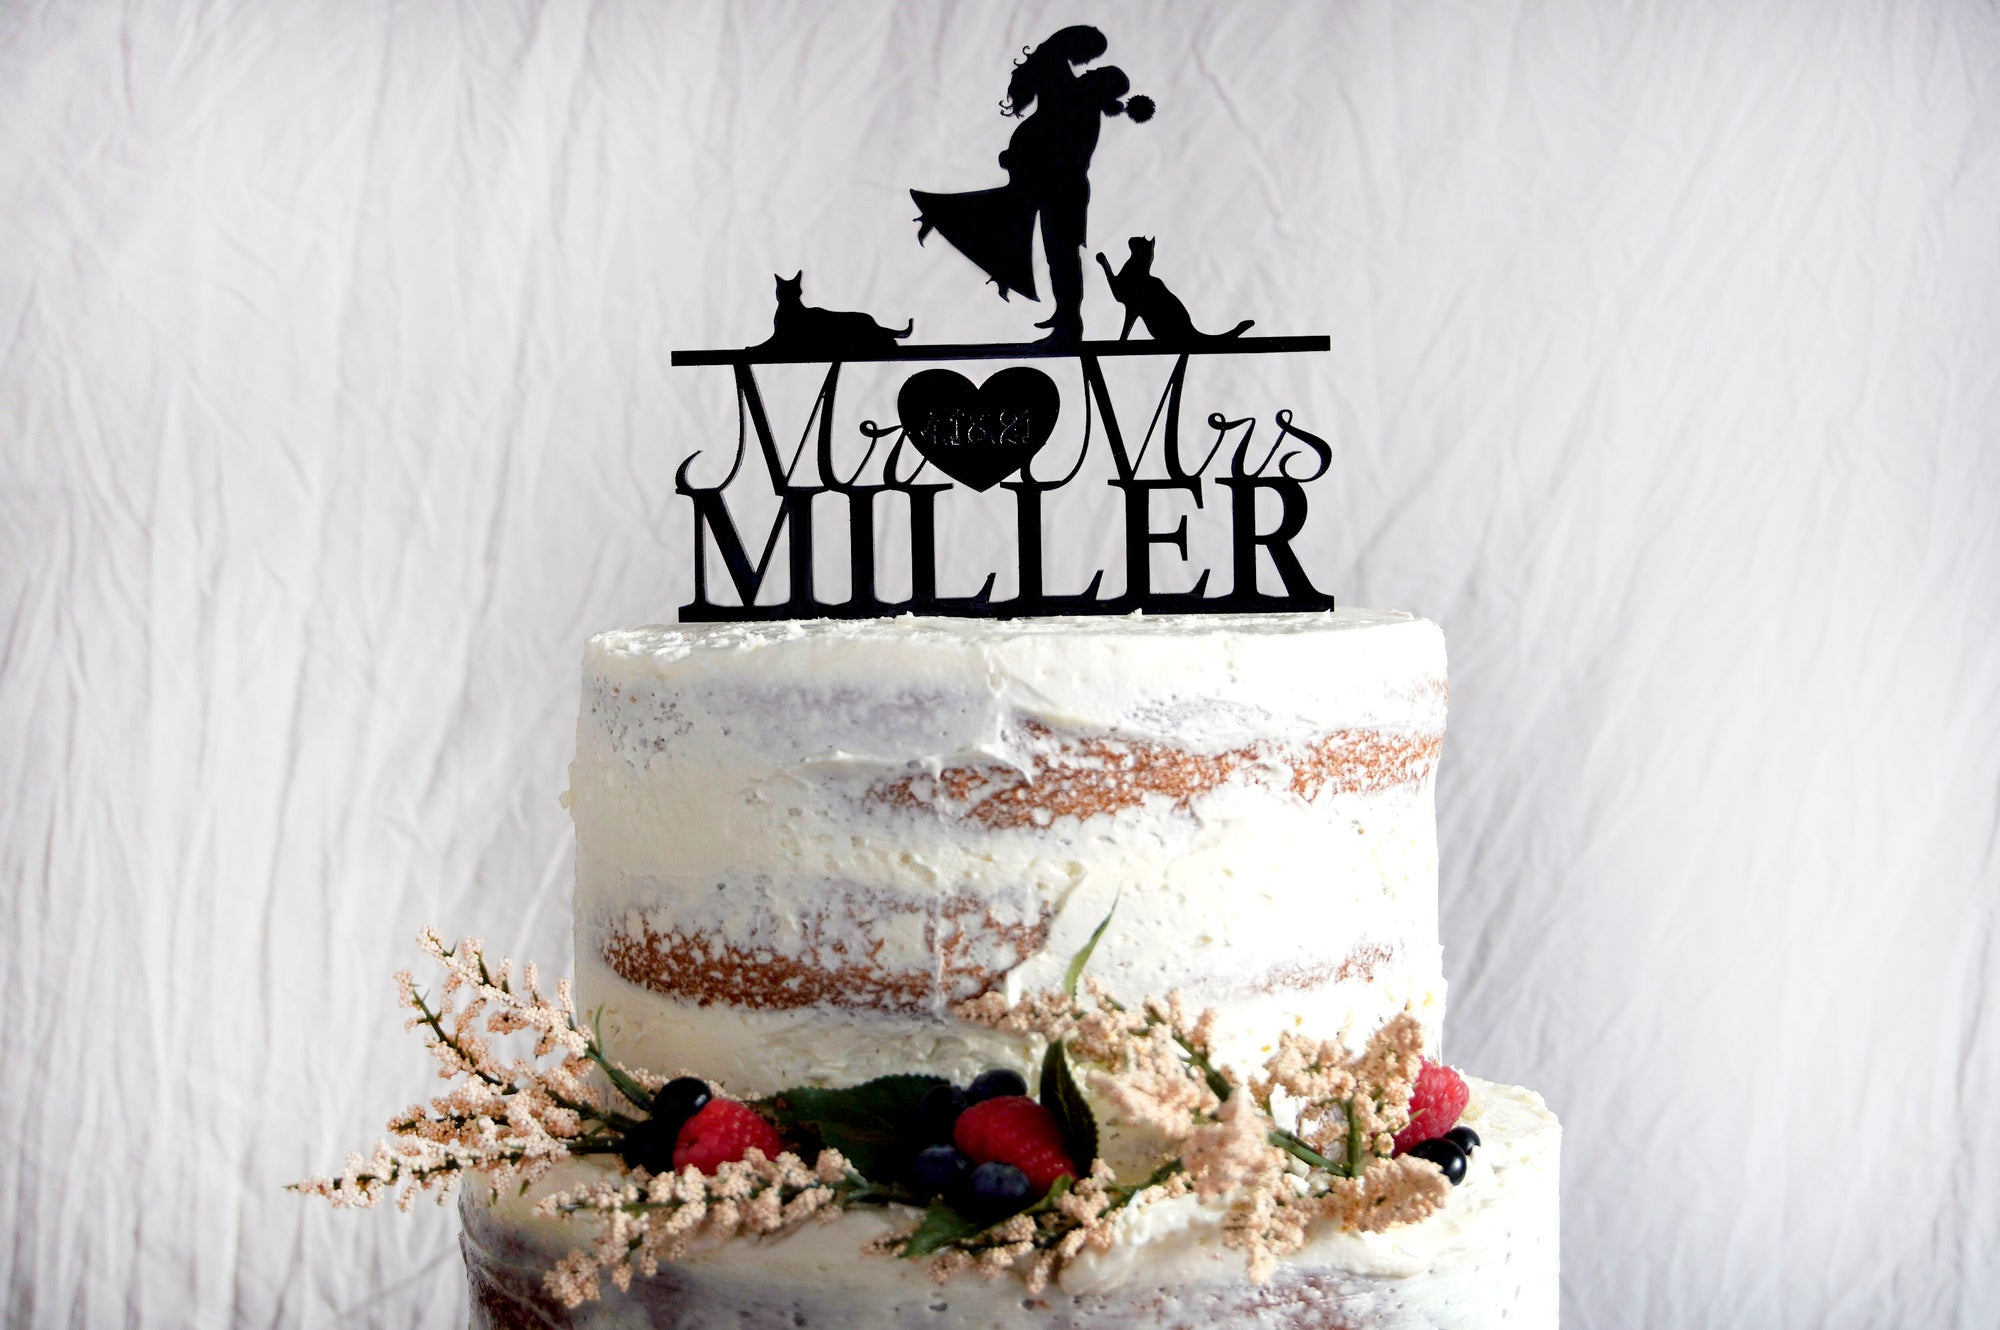 Silhouette Wedding Cake Topper | Custom Bride & Groom Anniversary Topper | Personalized Family Name | Custom Dogs or Pets | Wood or Acrylic Gift, Cake Toppers, designLEE Studio, designLEE Studio